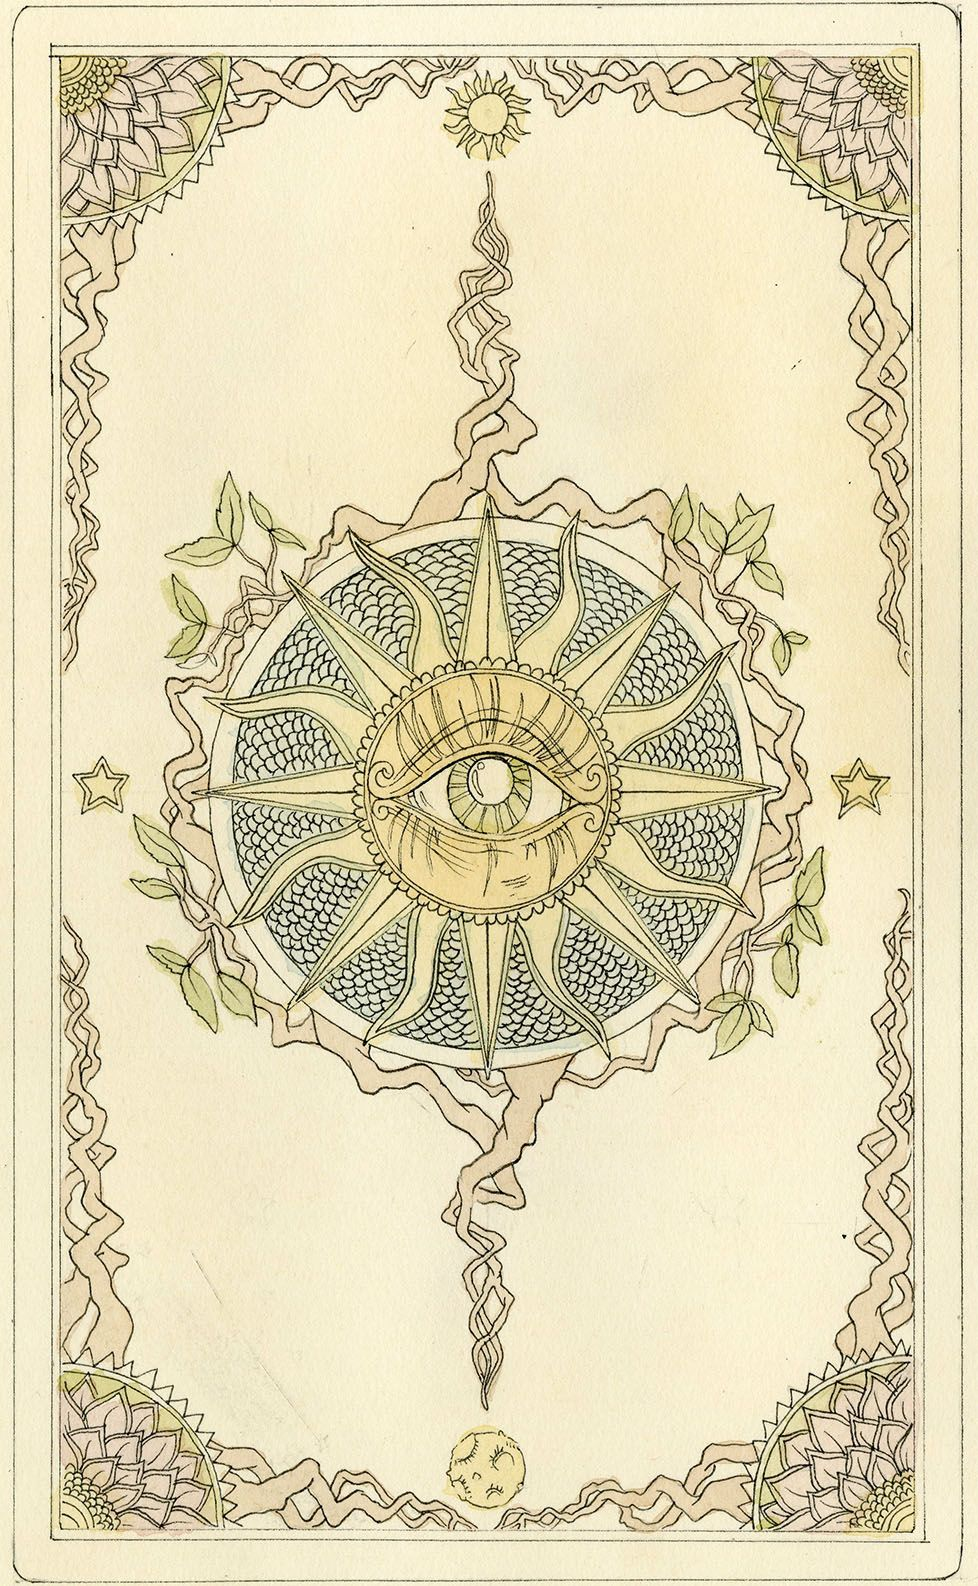 Back Design Of Tarot Cards - Google Search